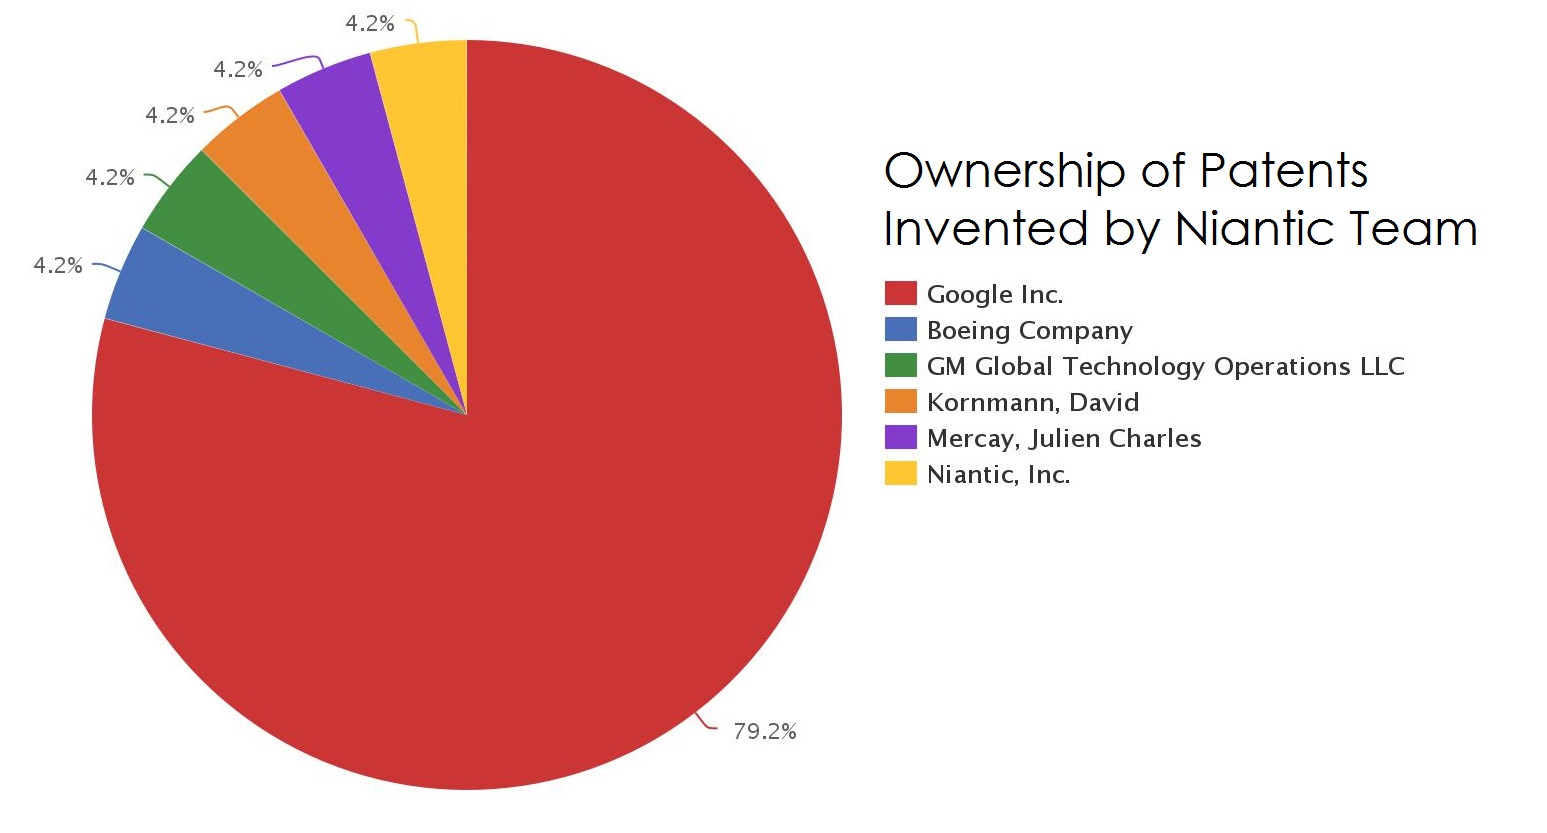 Ownership_of_Patents_Invented_by_Niantic_Team.jpeg